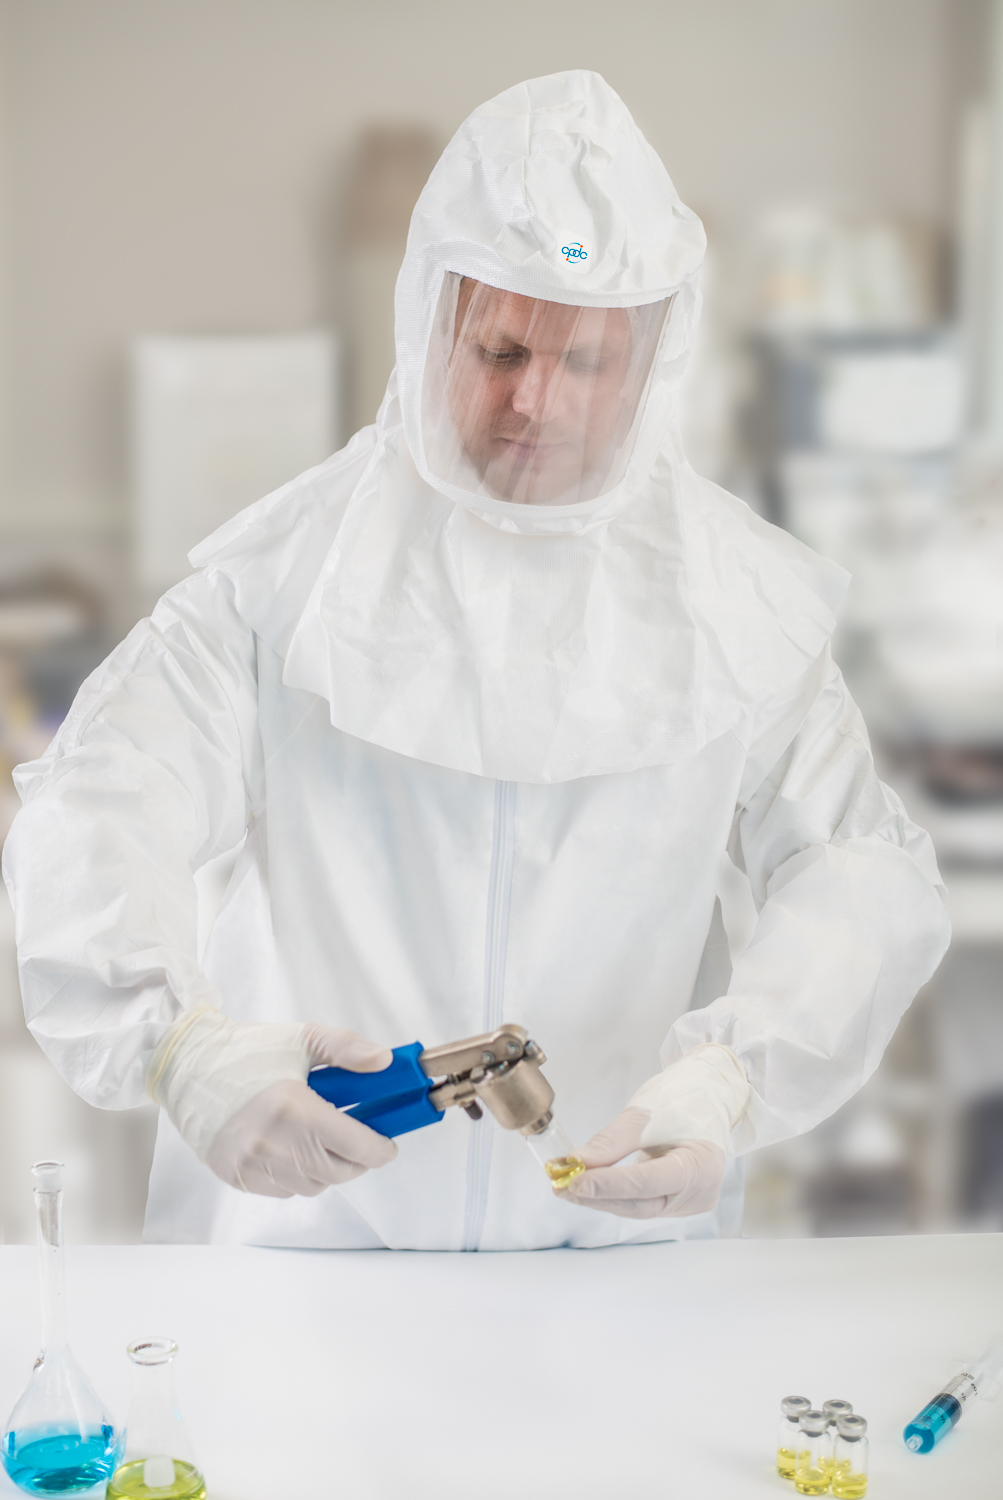 Hamilton Commercial Photographer - Laboratory Nuclear Medicine - Man in bio suit02.jpg